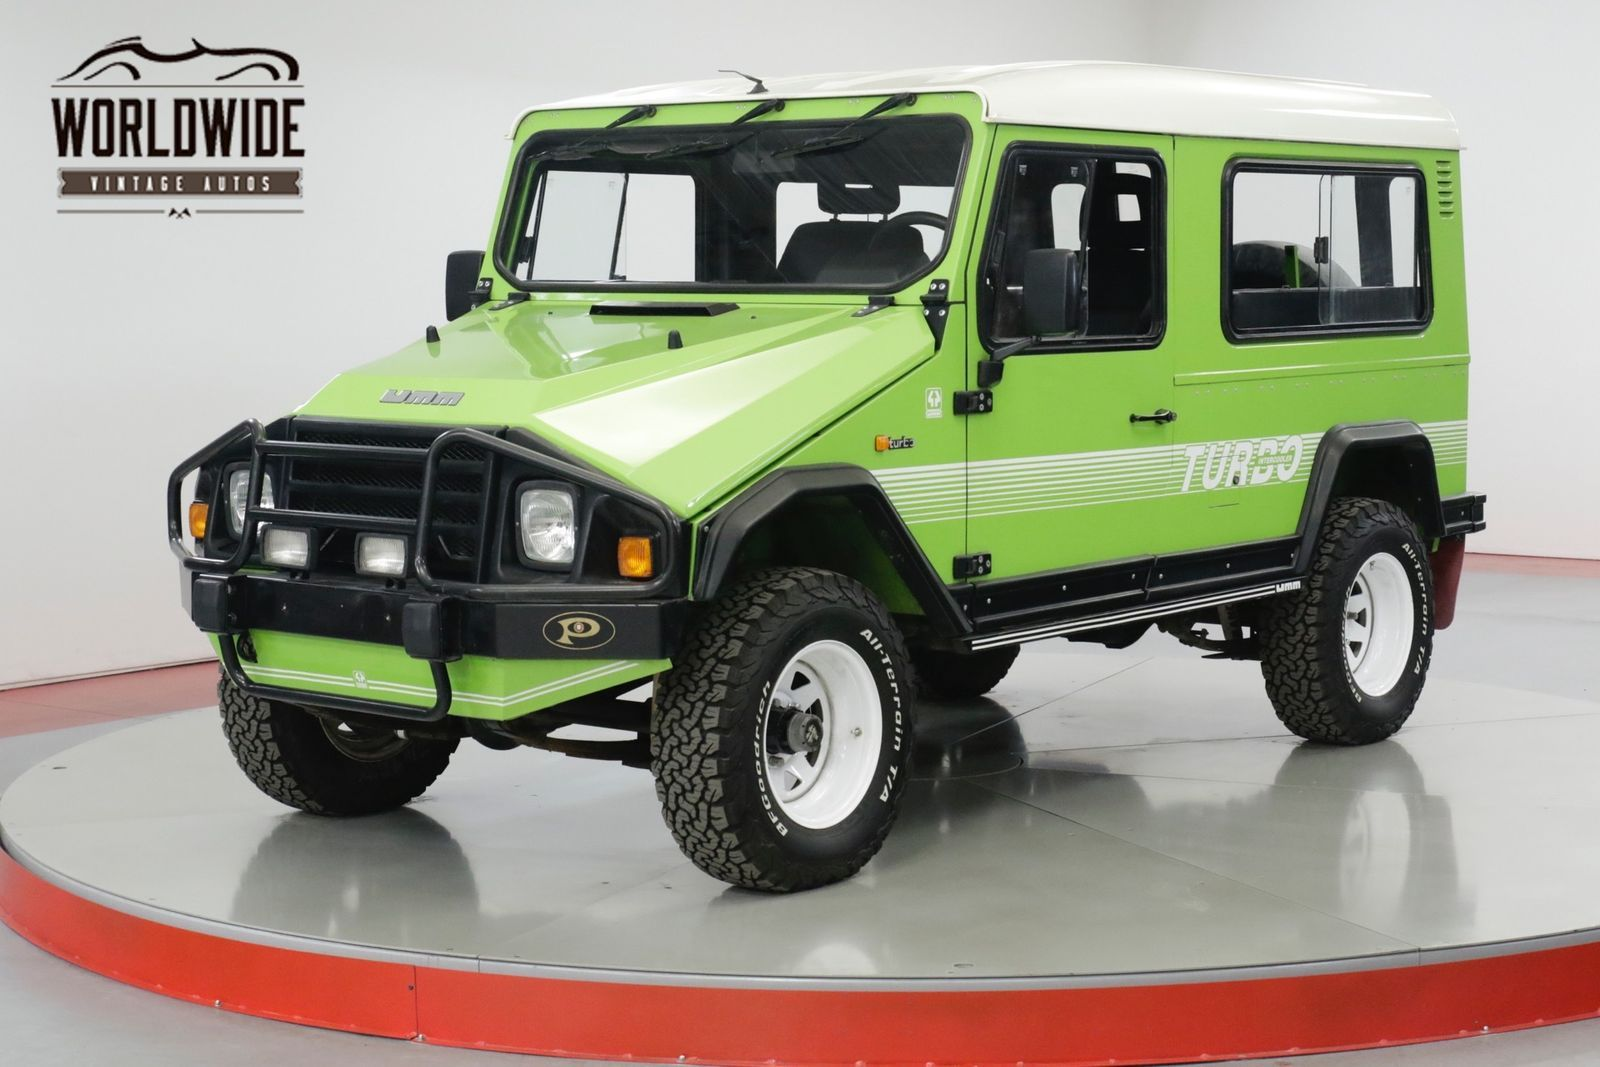 Rare Rides A 1990 UMM Alter II, Lots of Lime in 2020